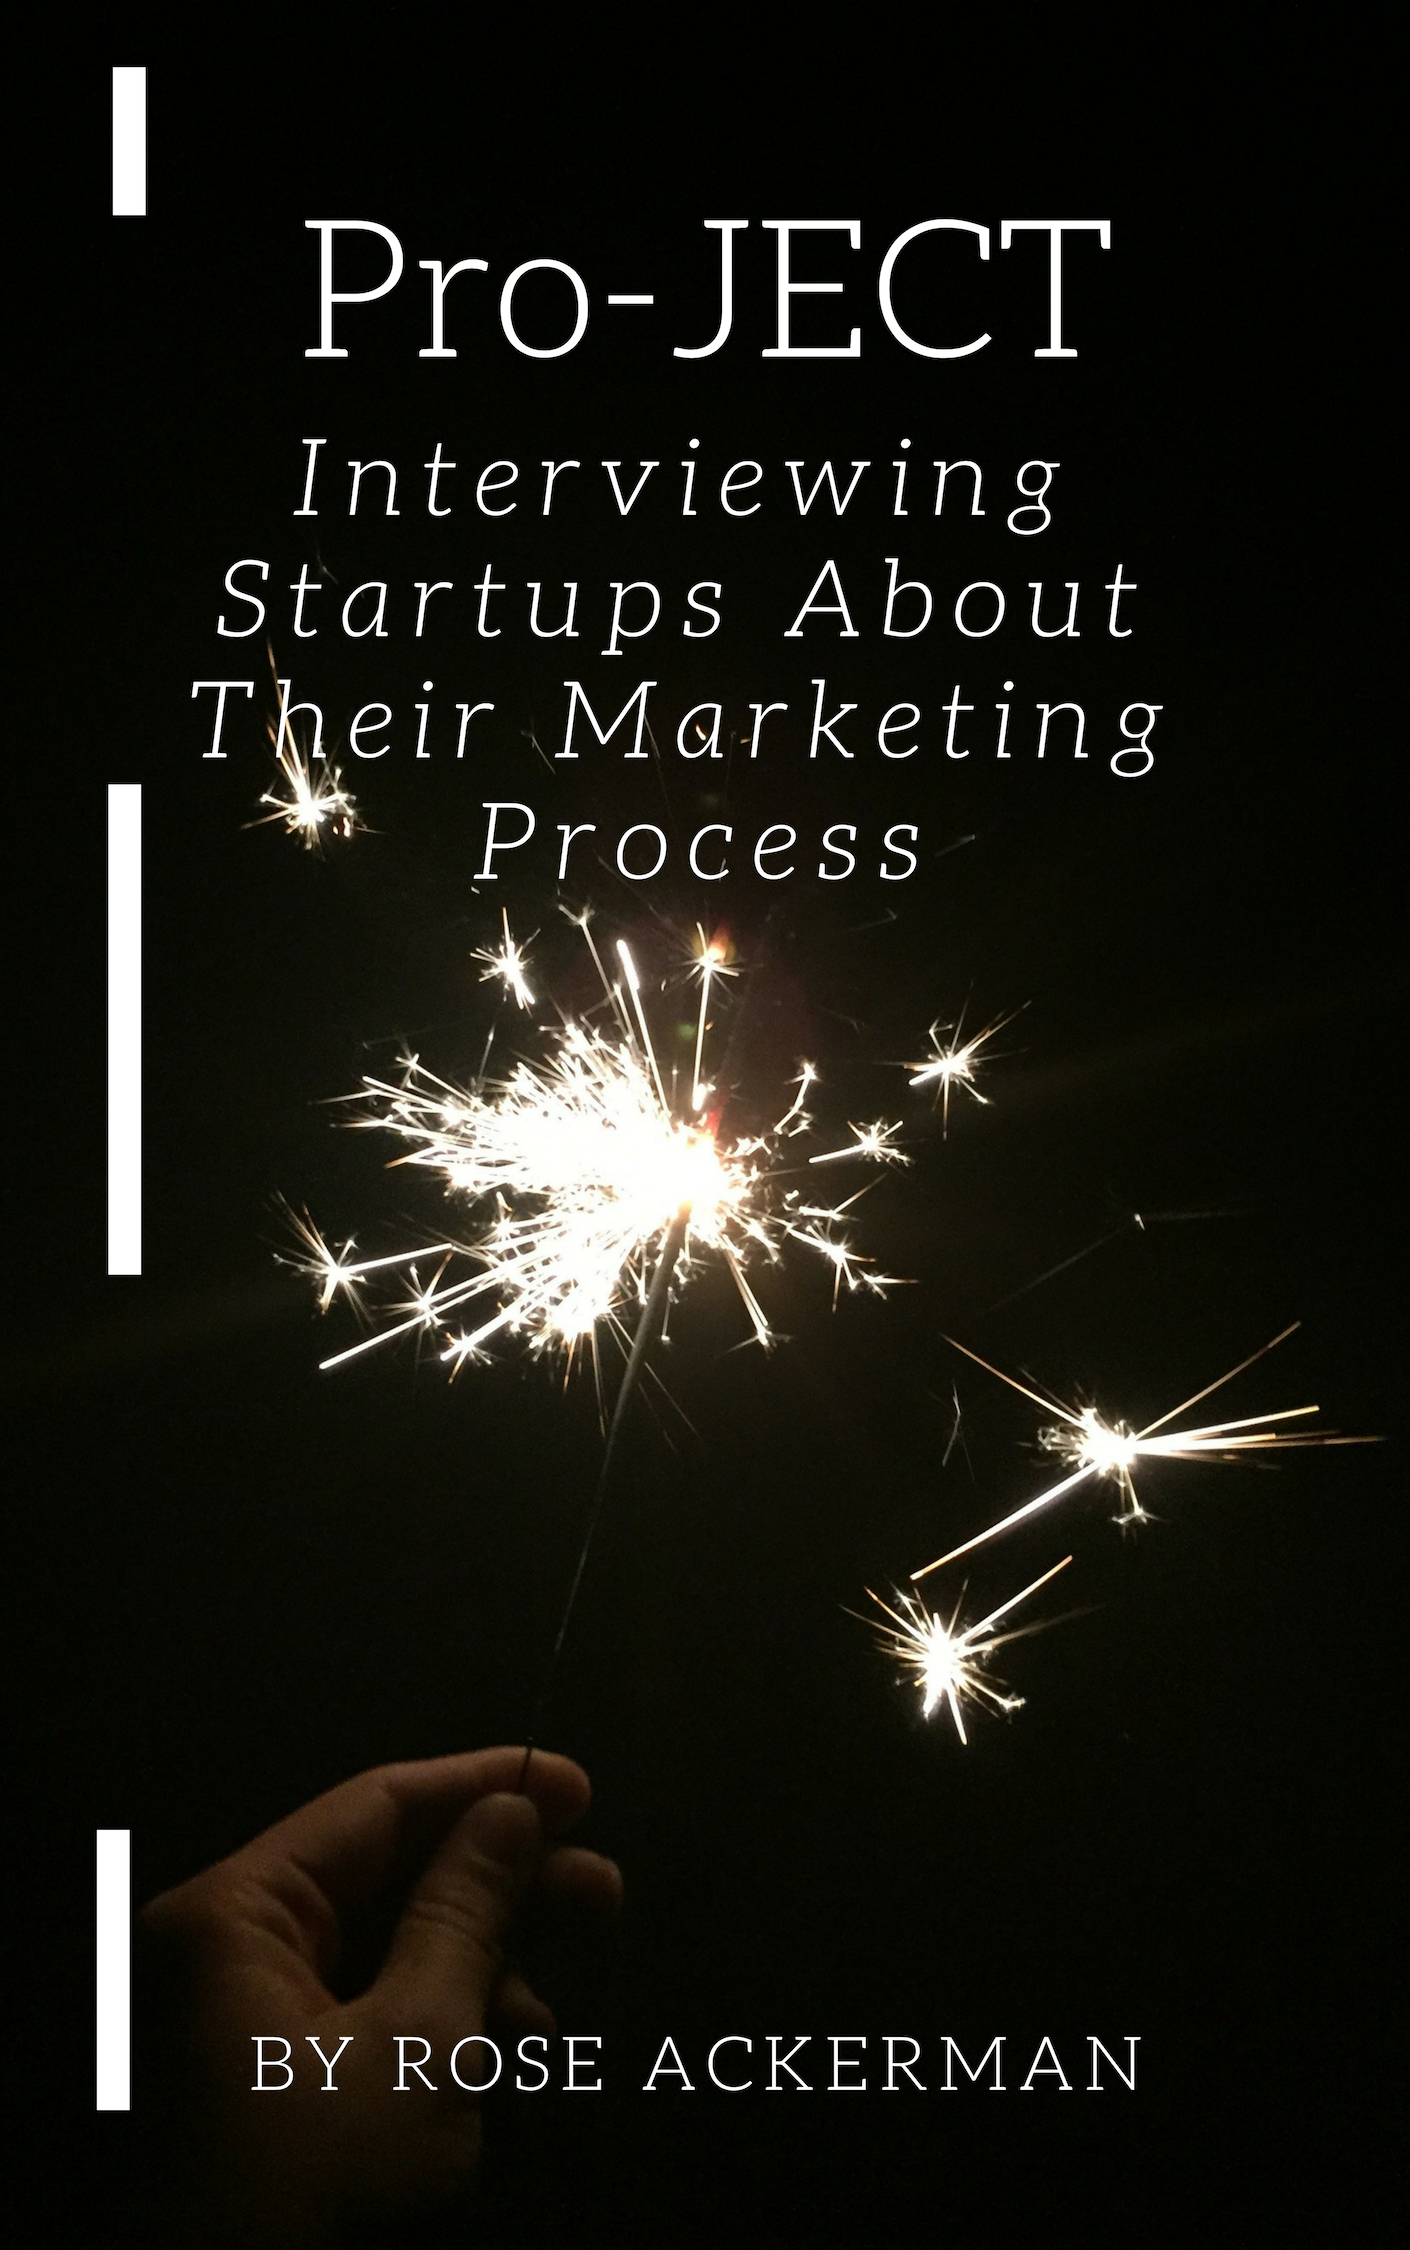 Pro-JECT: Interviewing Startups About Their Marketing Process